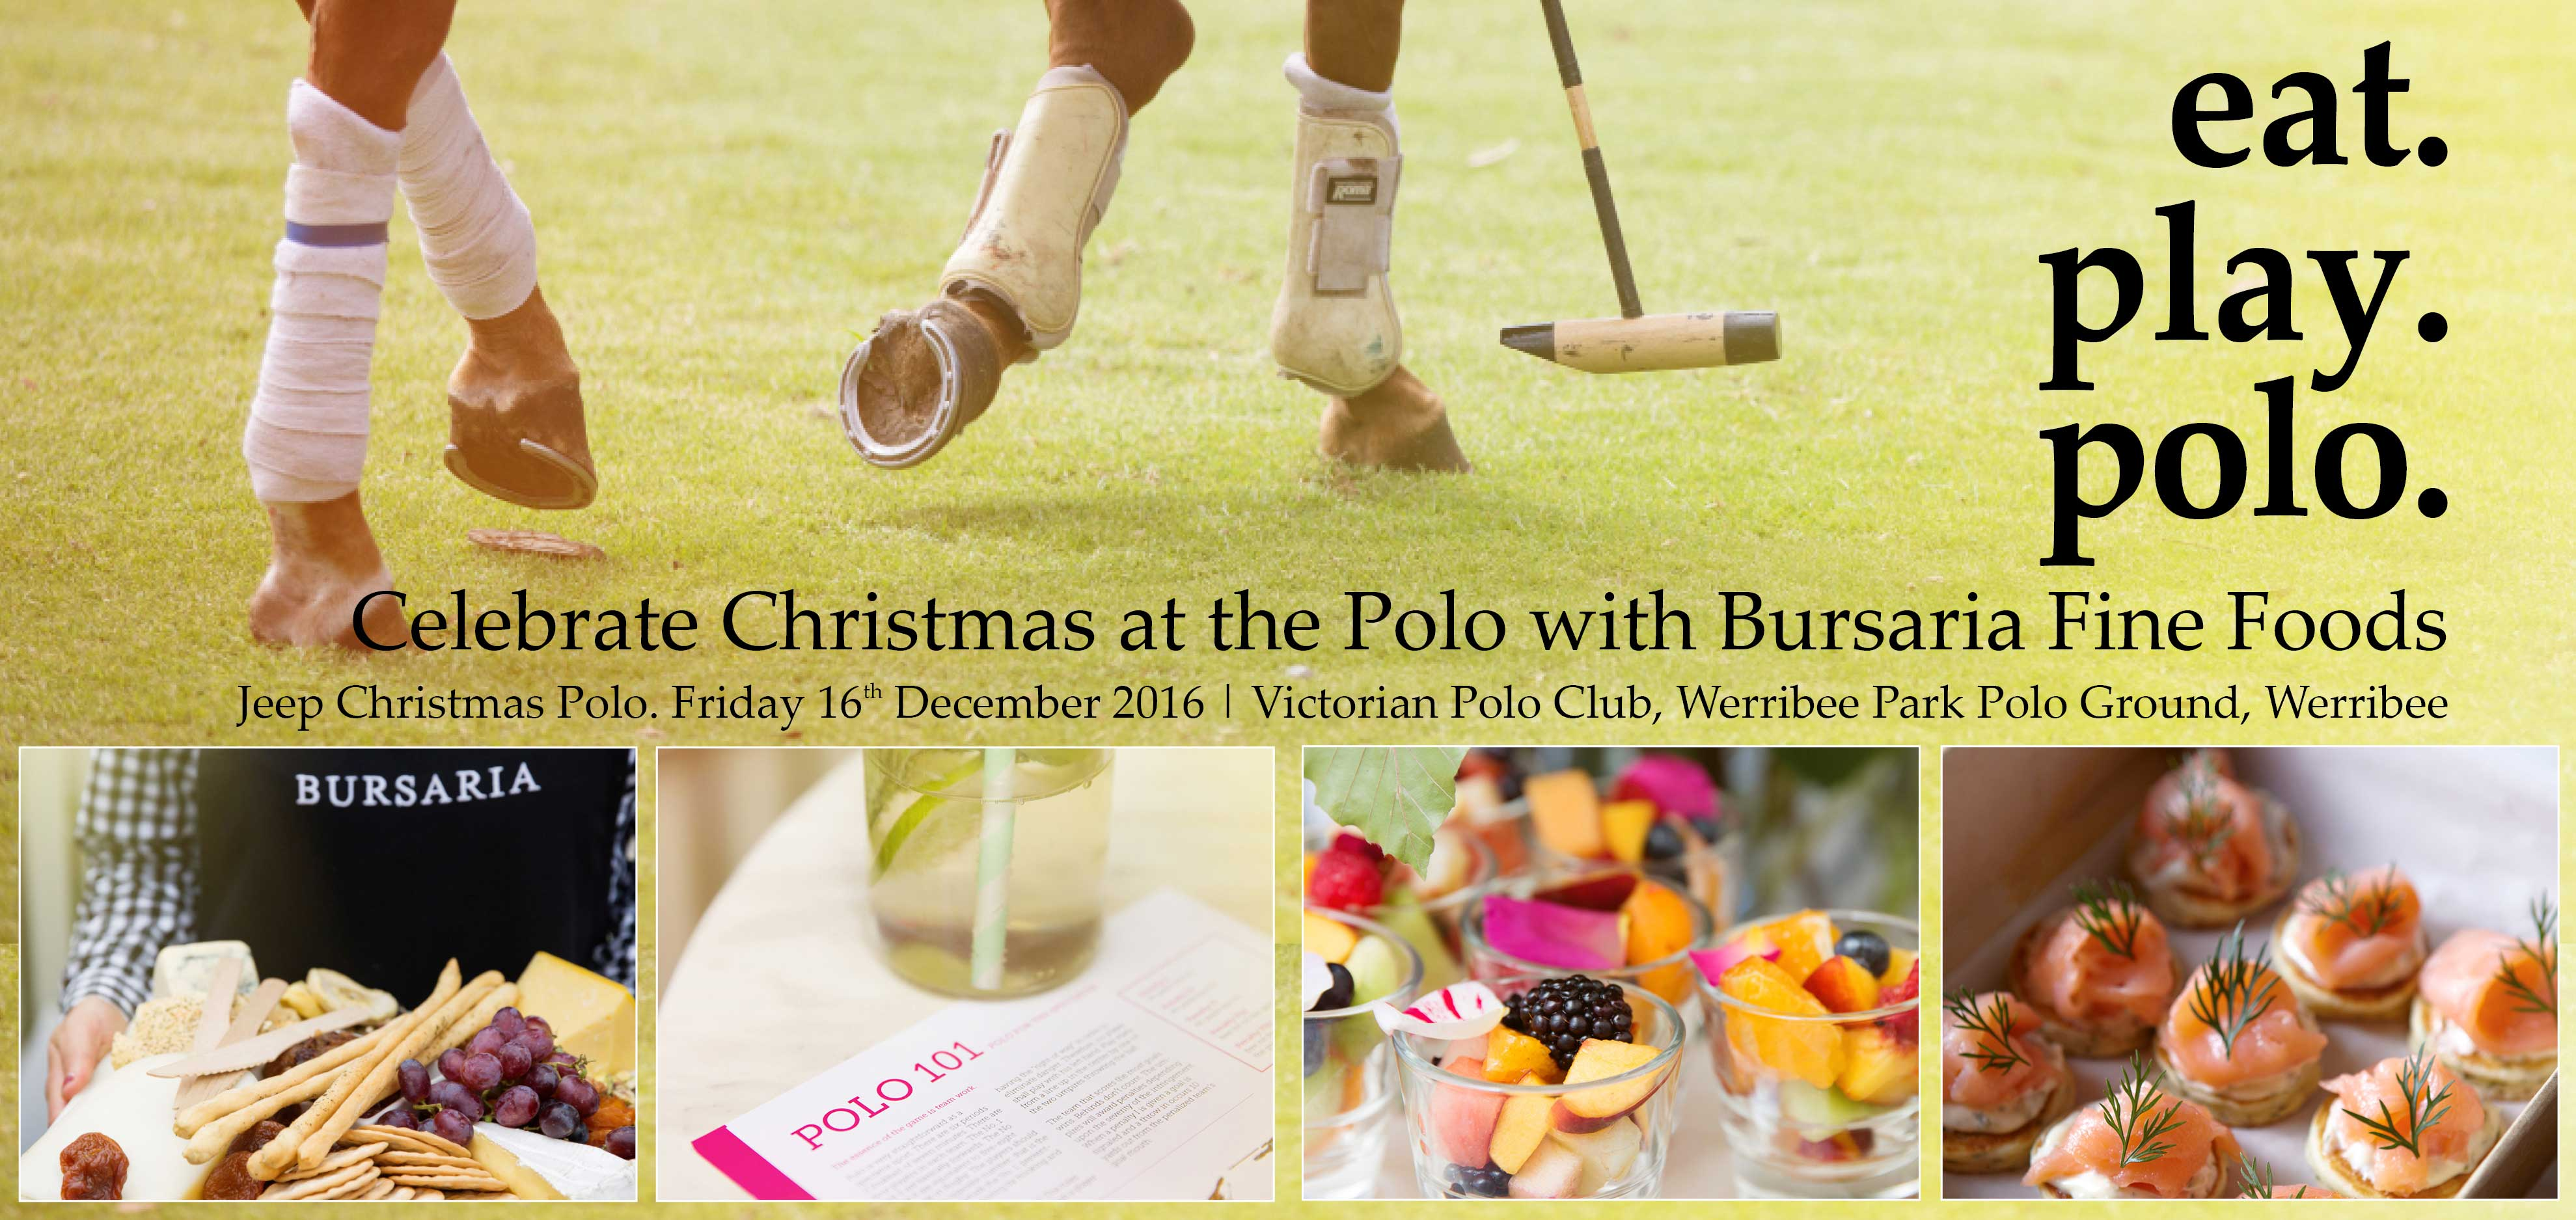 bursaria-fine-foods-at-werribee-mansion-polo-jeep-melbourne-cup-december-2016